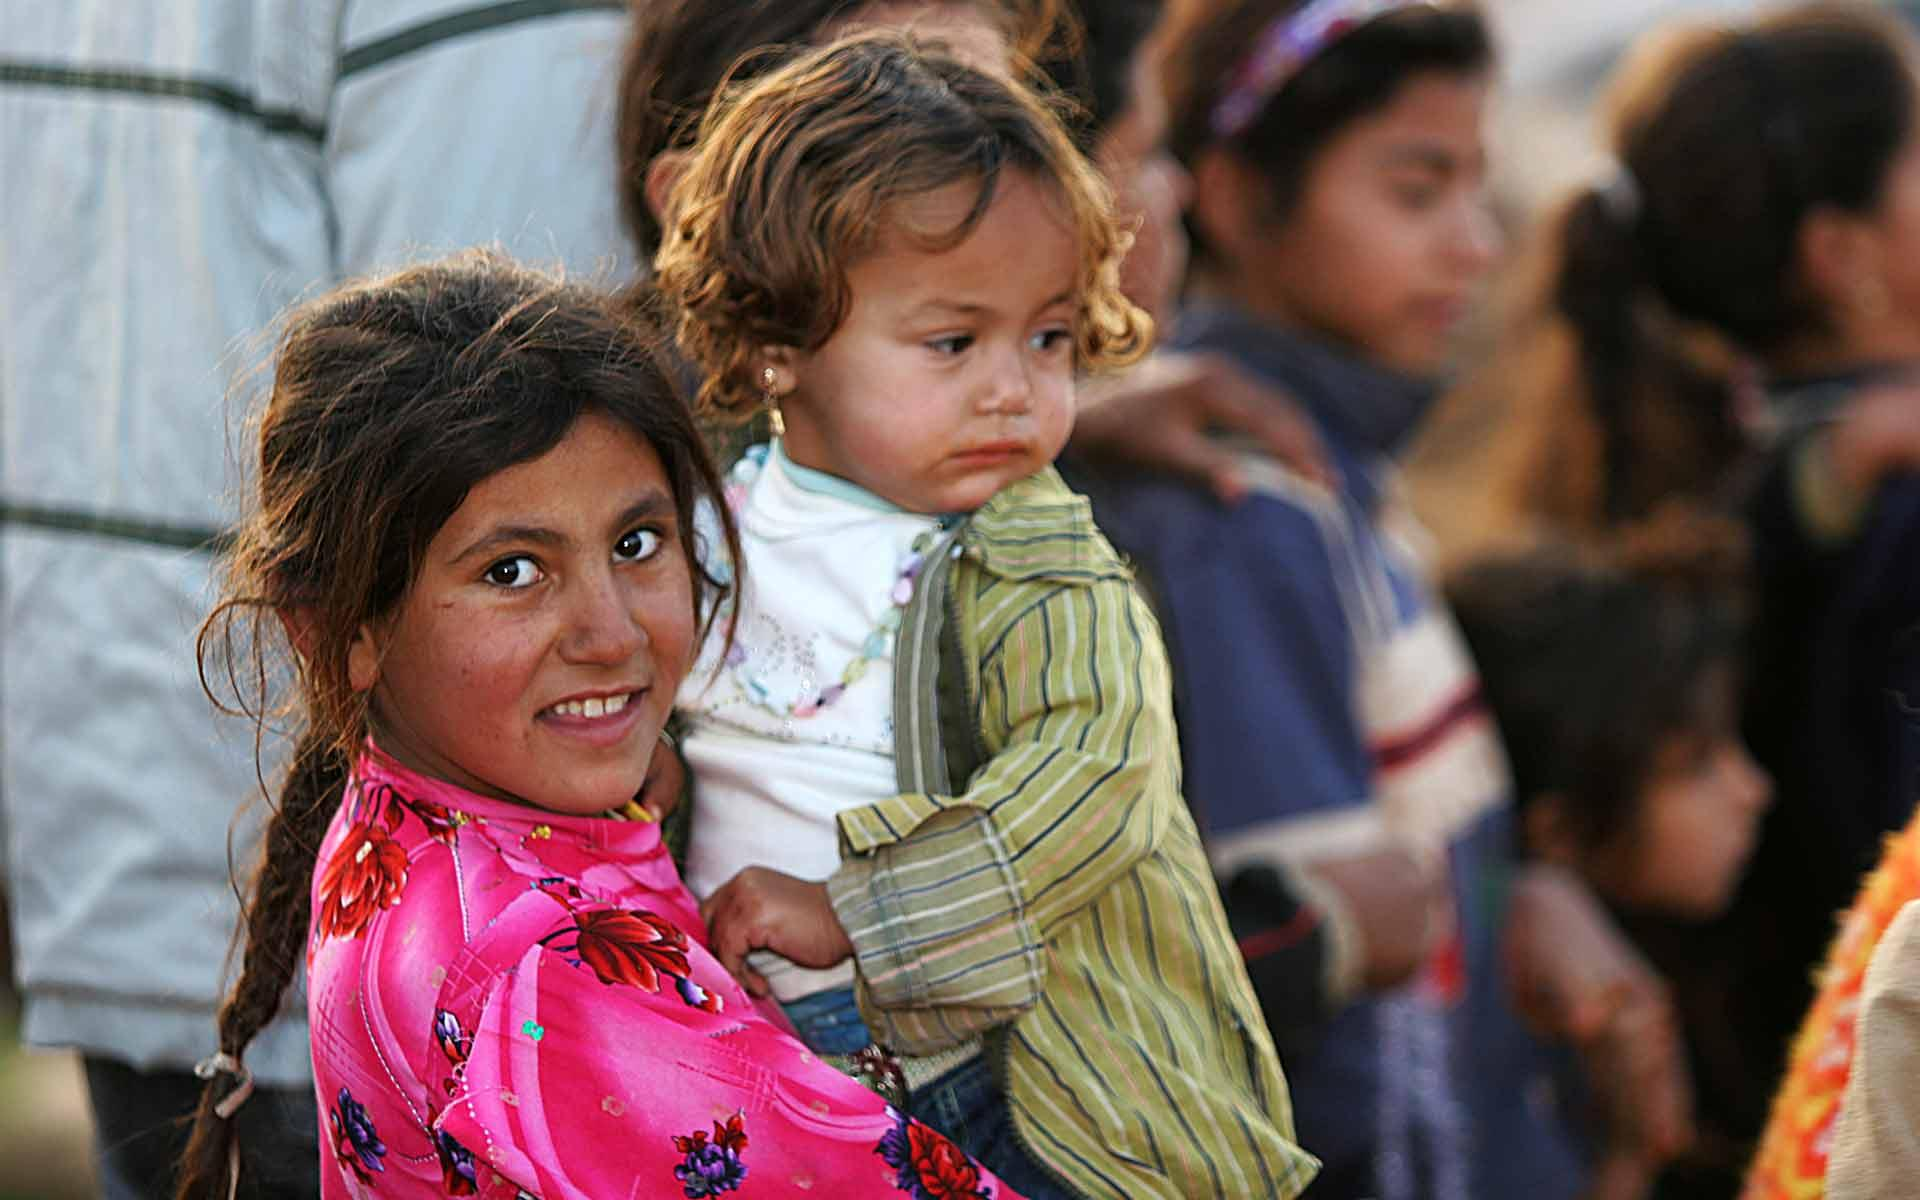 Iraqi refugee children inDamascus, Syria.A British-Jewishpublisher is funding the rescue of Christians persecuted by the Islamic State terror groupin Iraq and Syria. Credit: James Gordon via Wikimedia Commons.